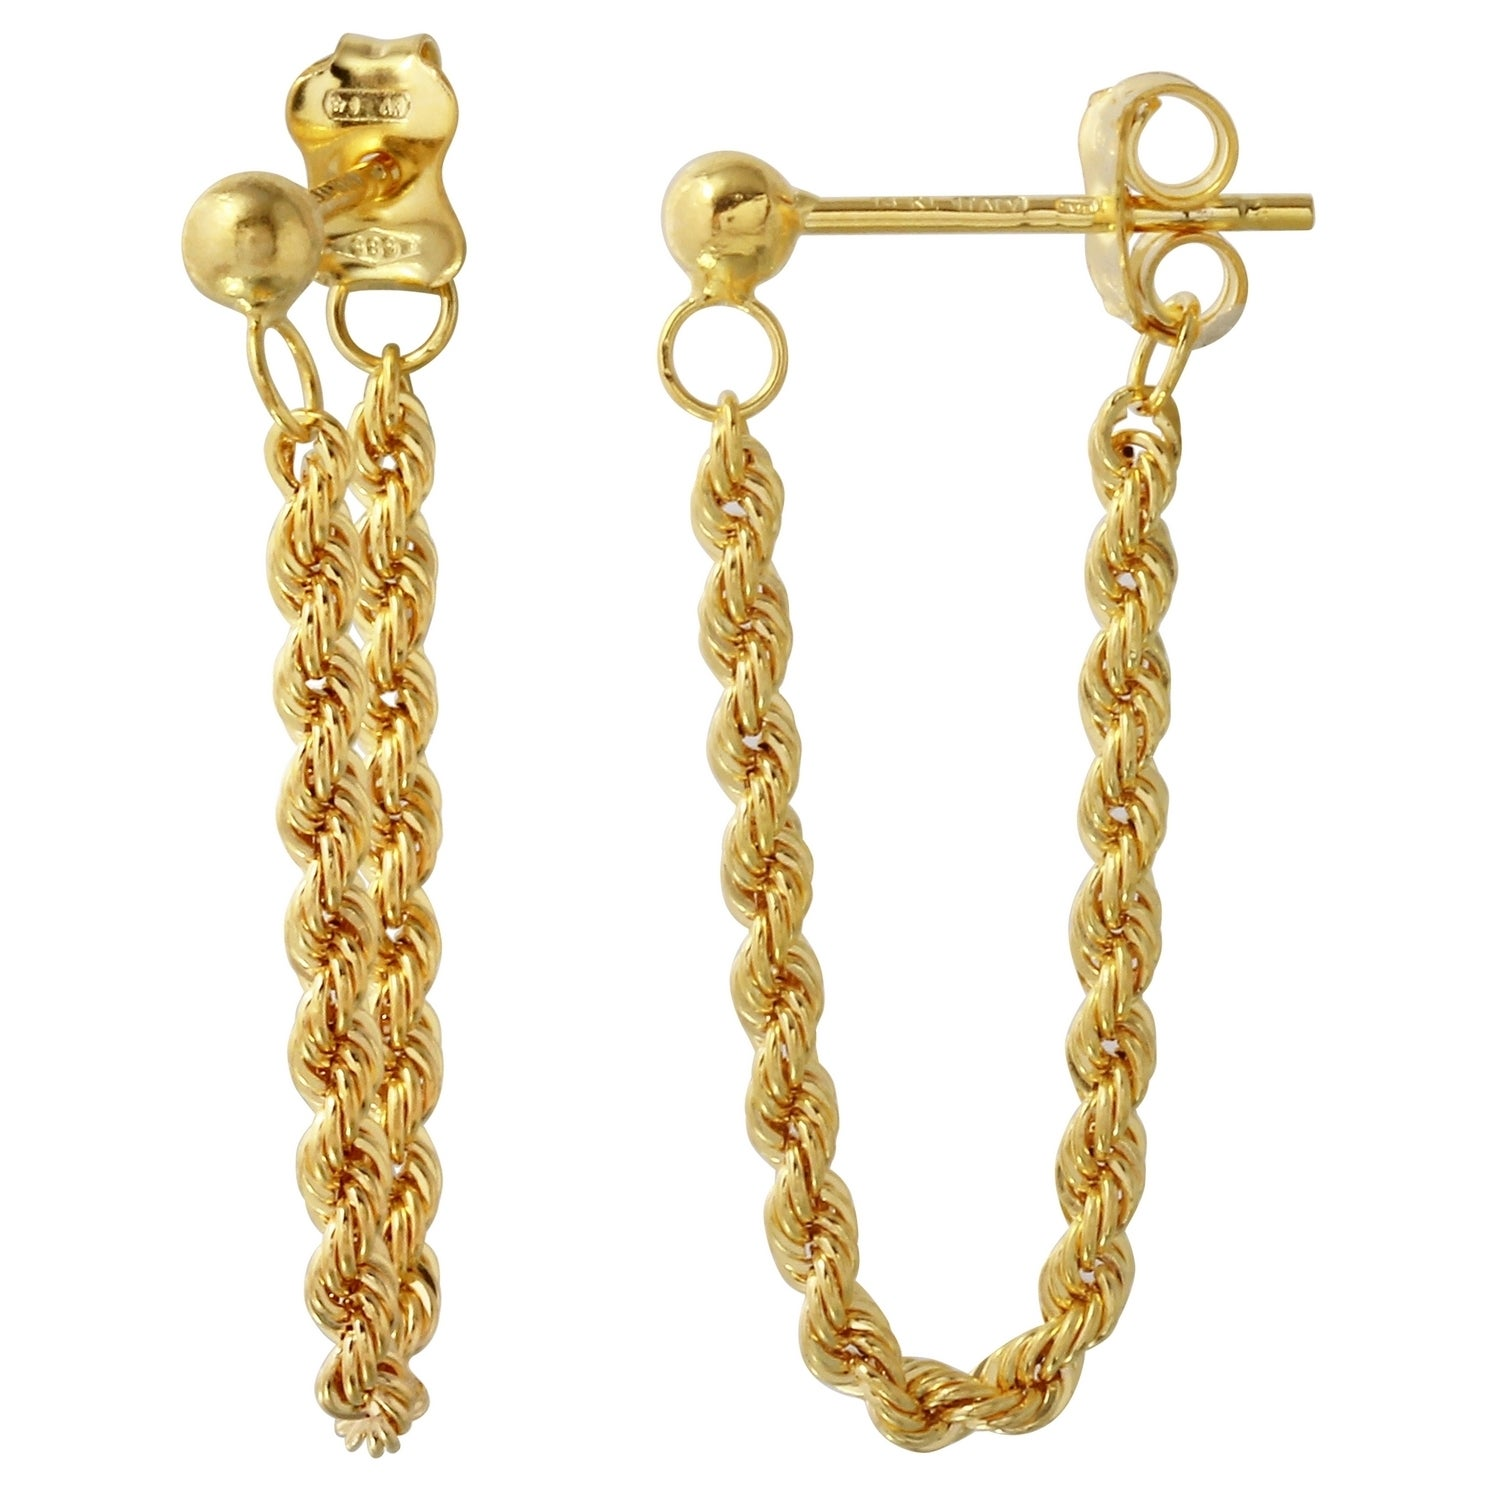 14k Italian Yellow Gold Dangling Rope Earrings Free Shipping Today 11977670